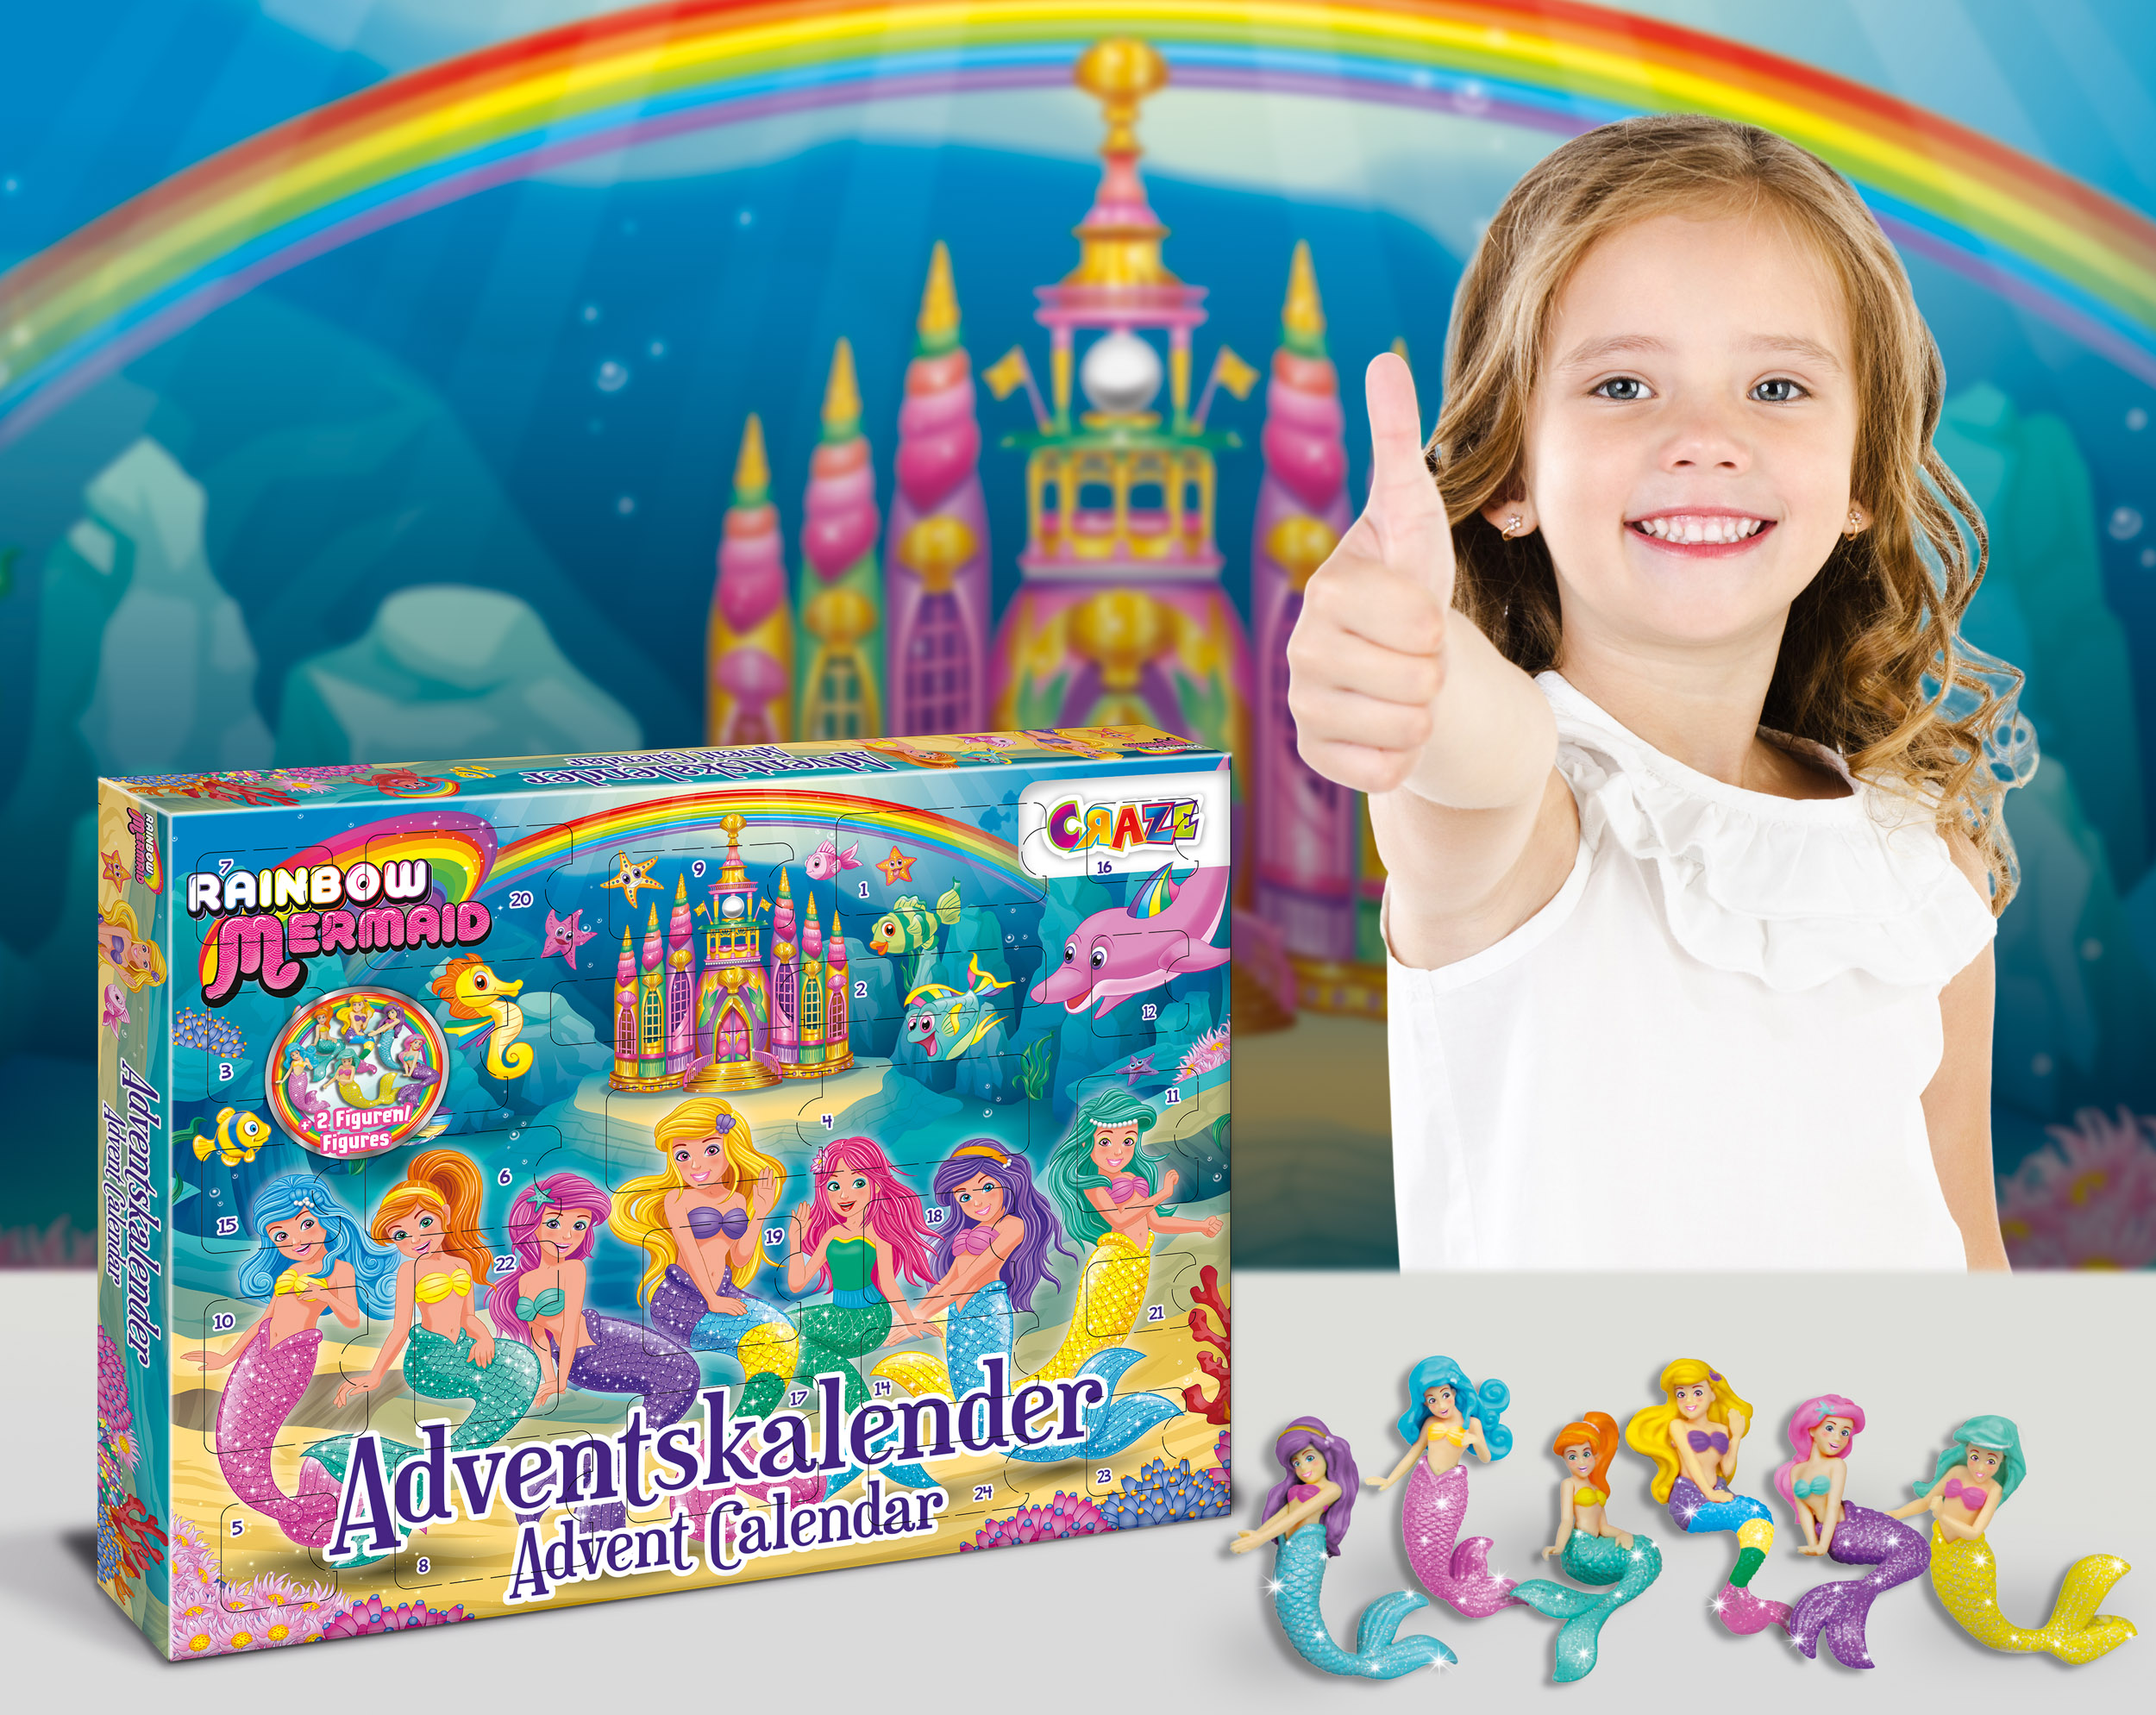 RAINBOW MERMAID Adventskalender